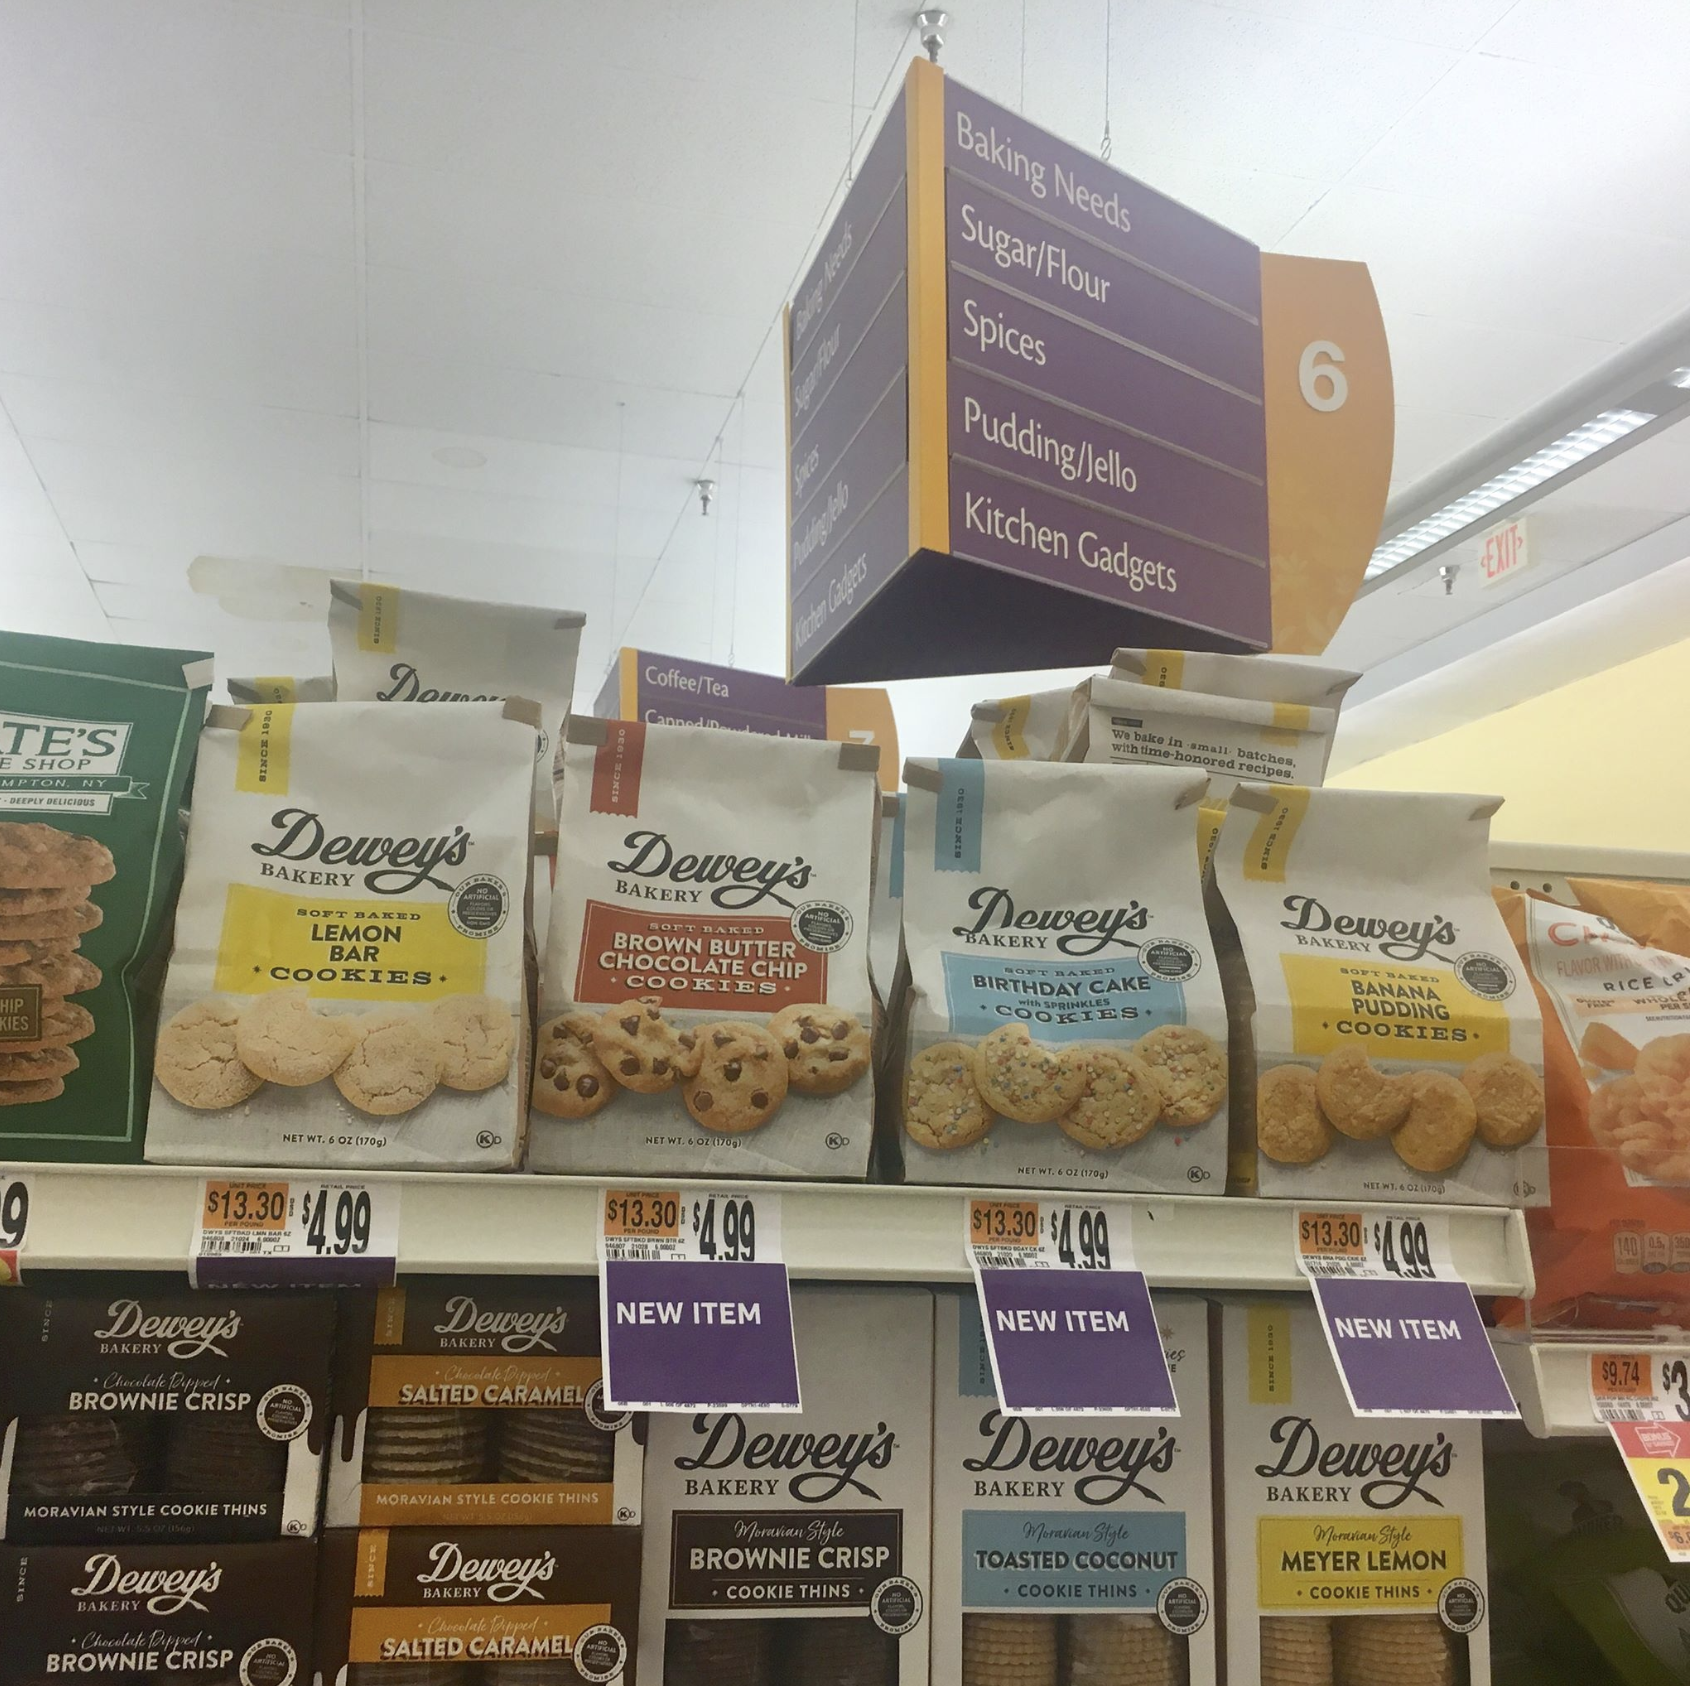 Dewey's Bakery Soft Baked Cookies available at Walmart, Wegmans and Giant retailers